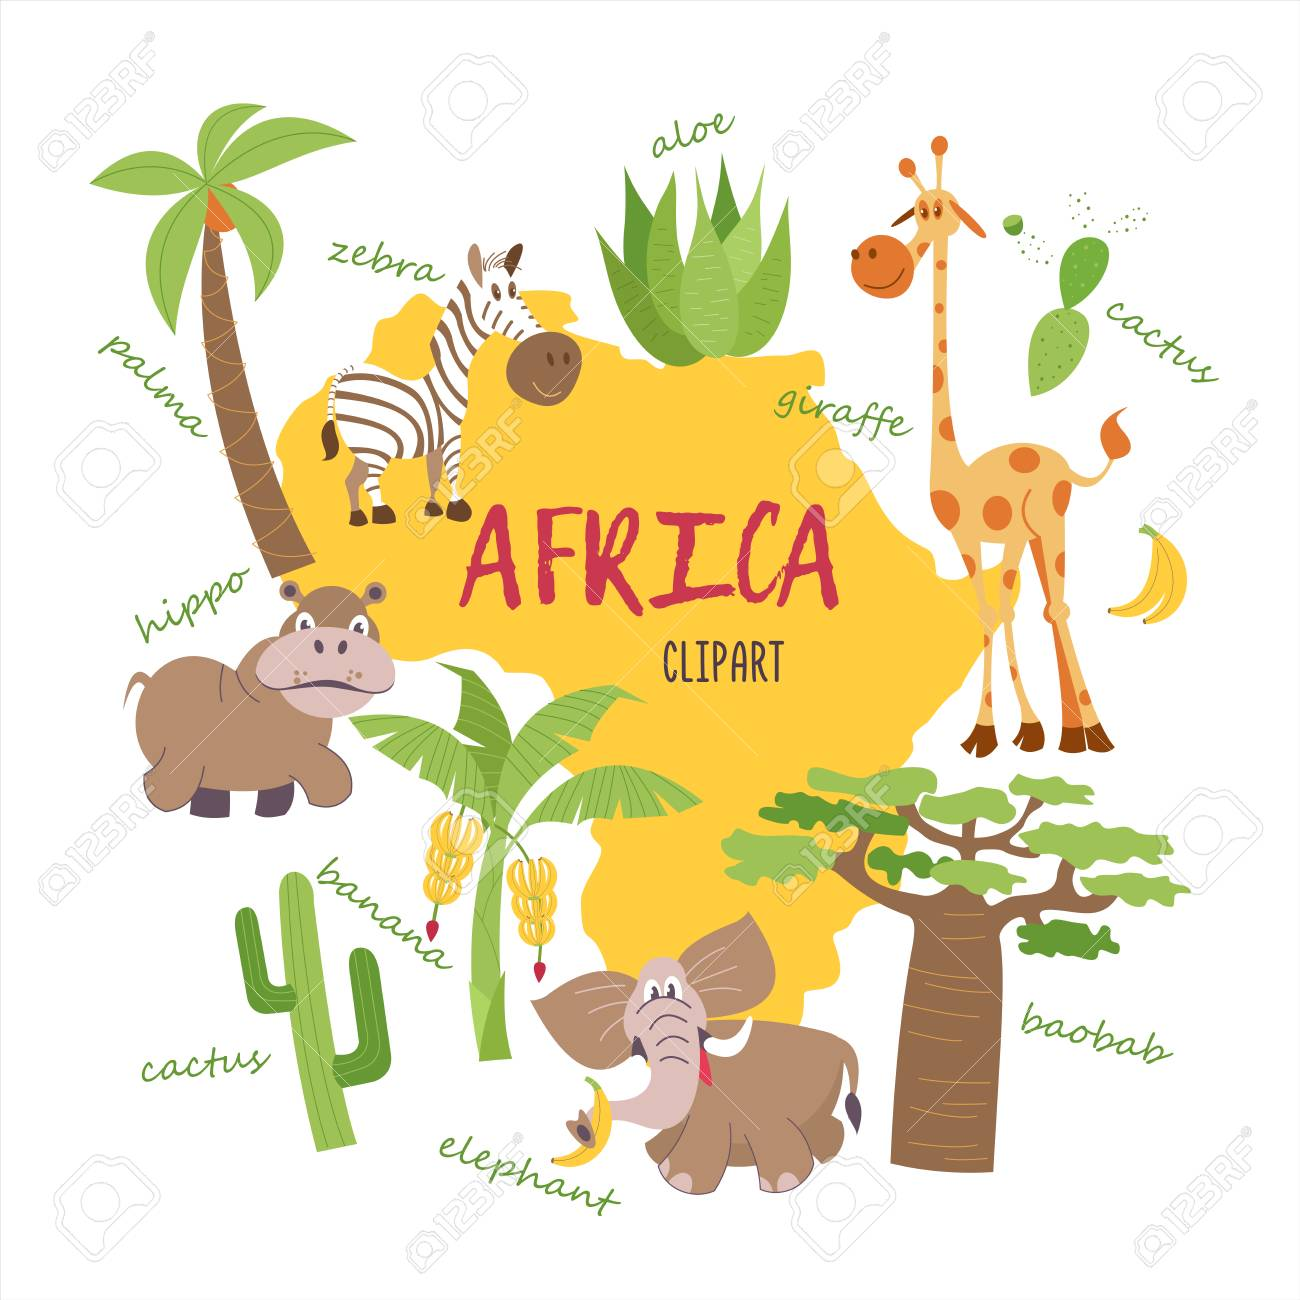 Africa Clipart. Nature And Animals Of Africa On The Map. Giraffes